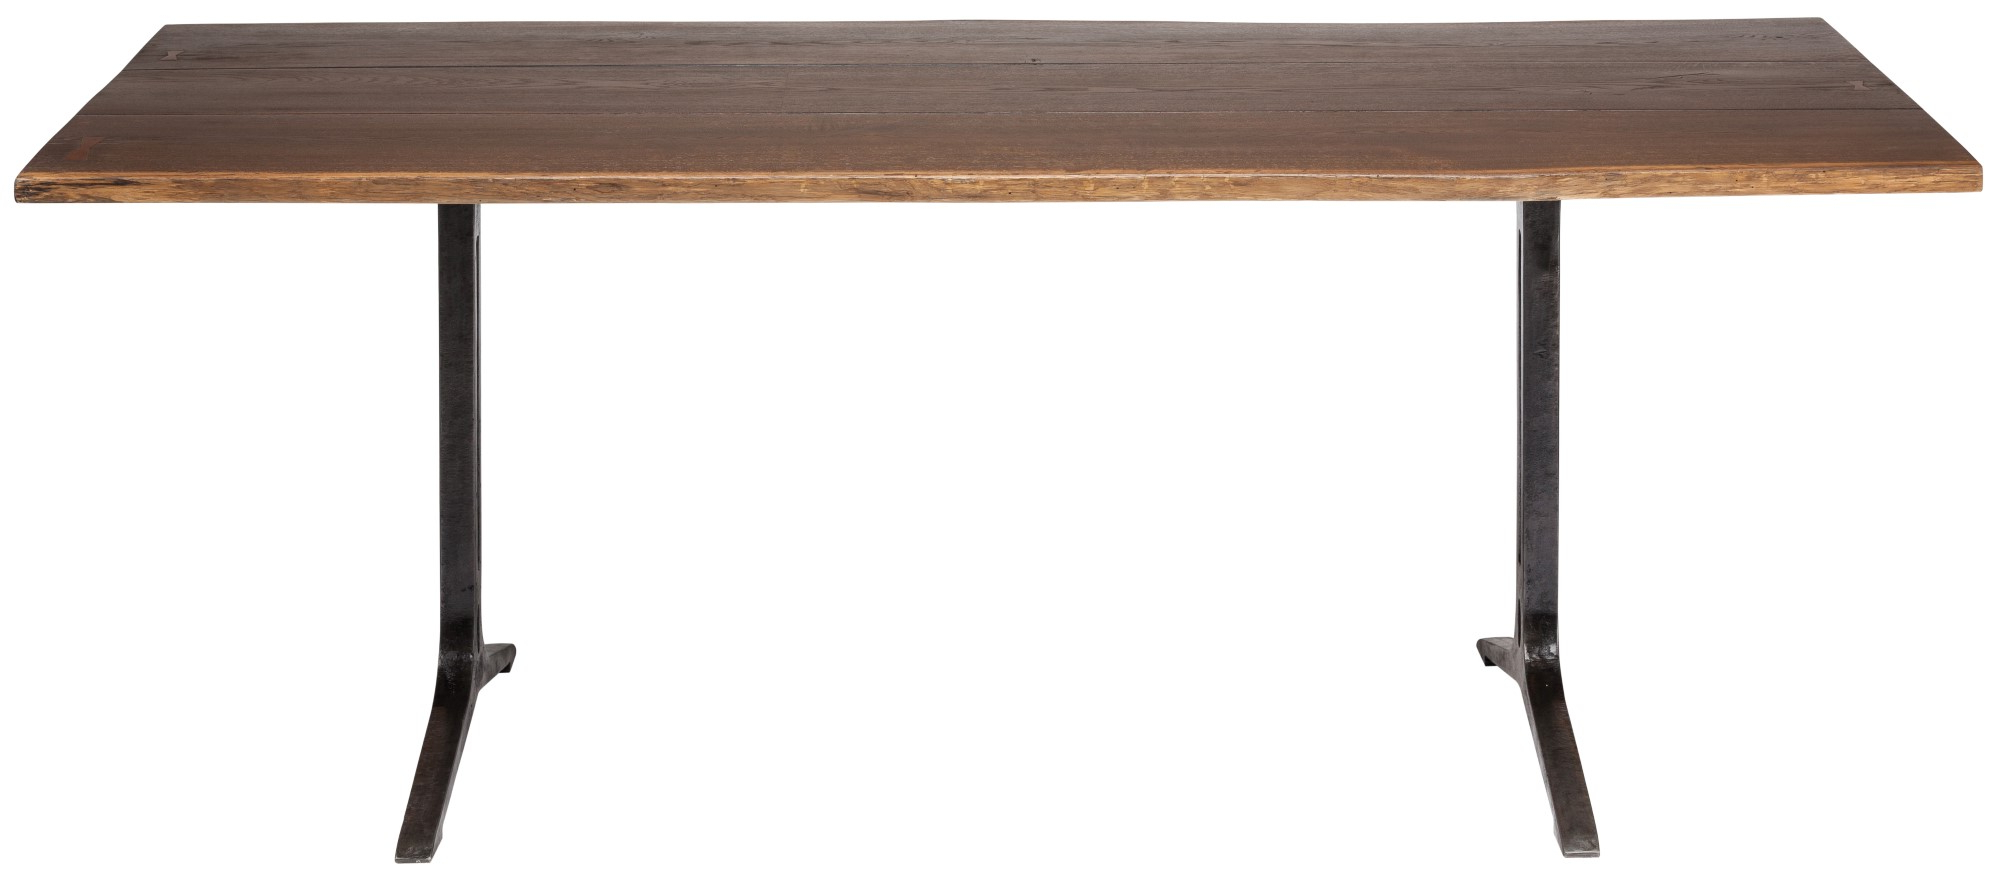 Recent Samara Live Edge Dining Table (Medium - Seared Oak With Black Base) intended for Dining Tables In Smoked/seared Oak